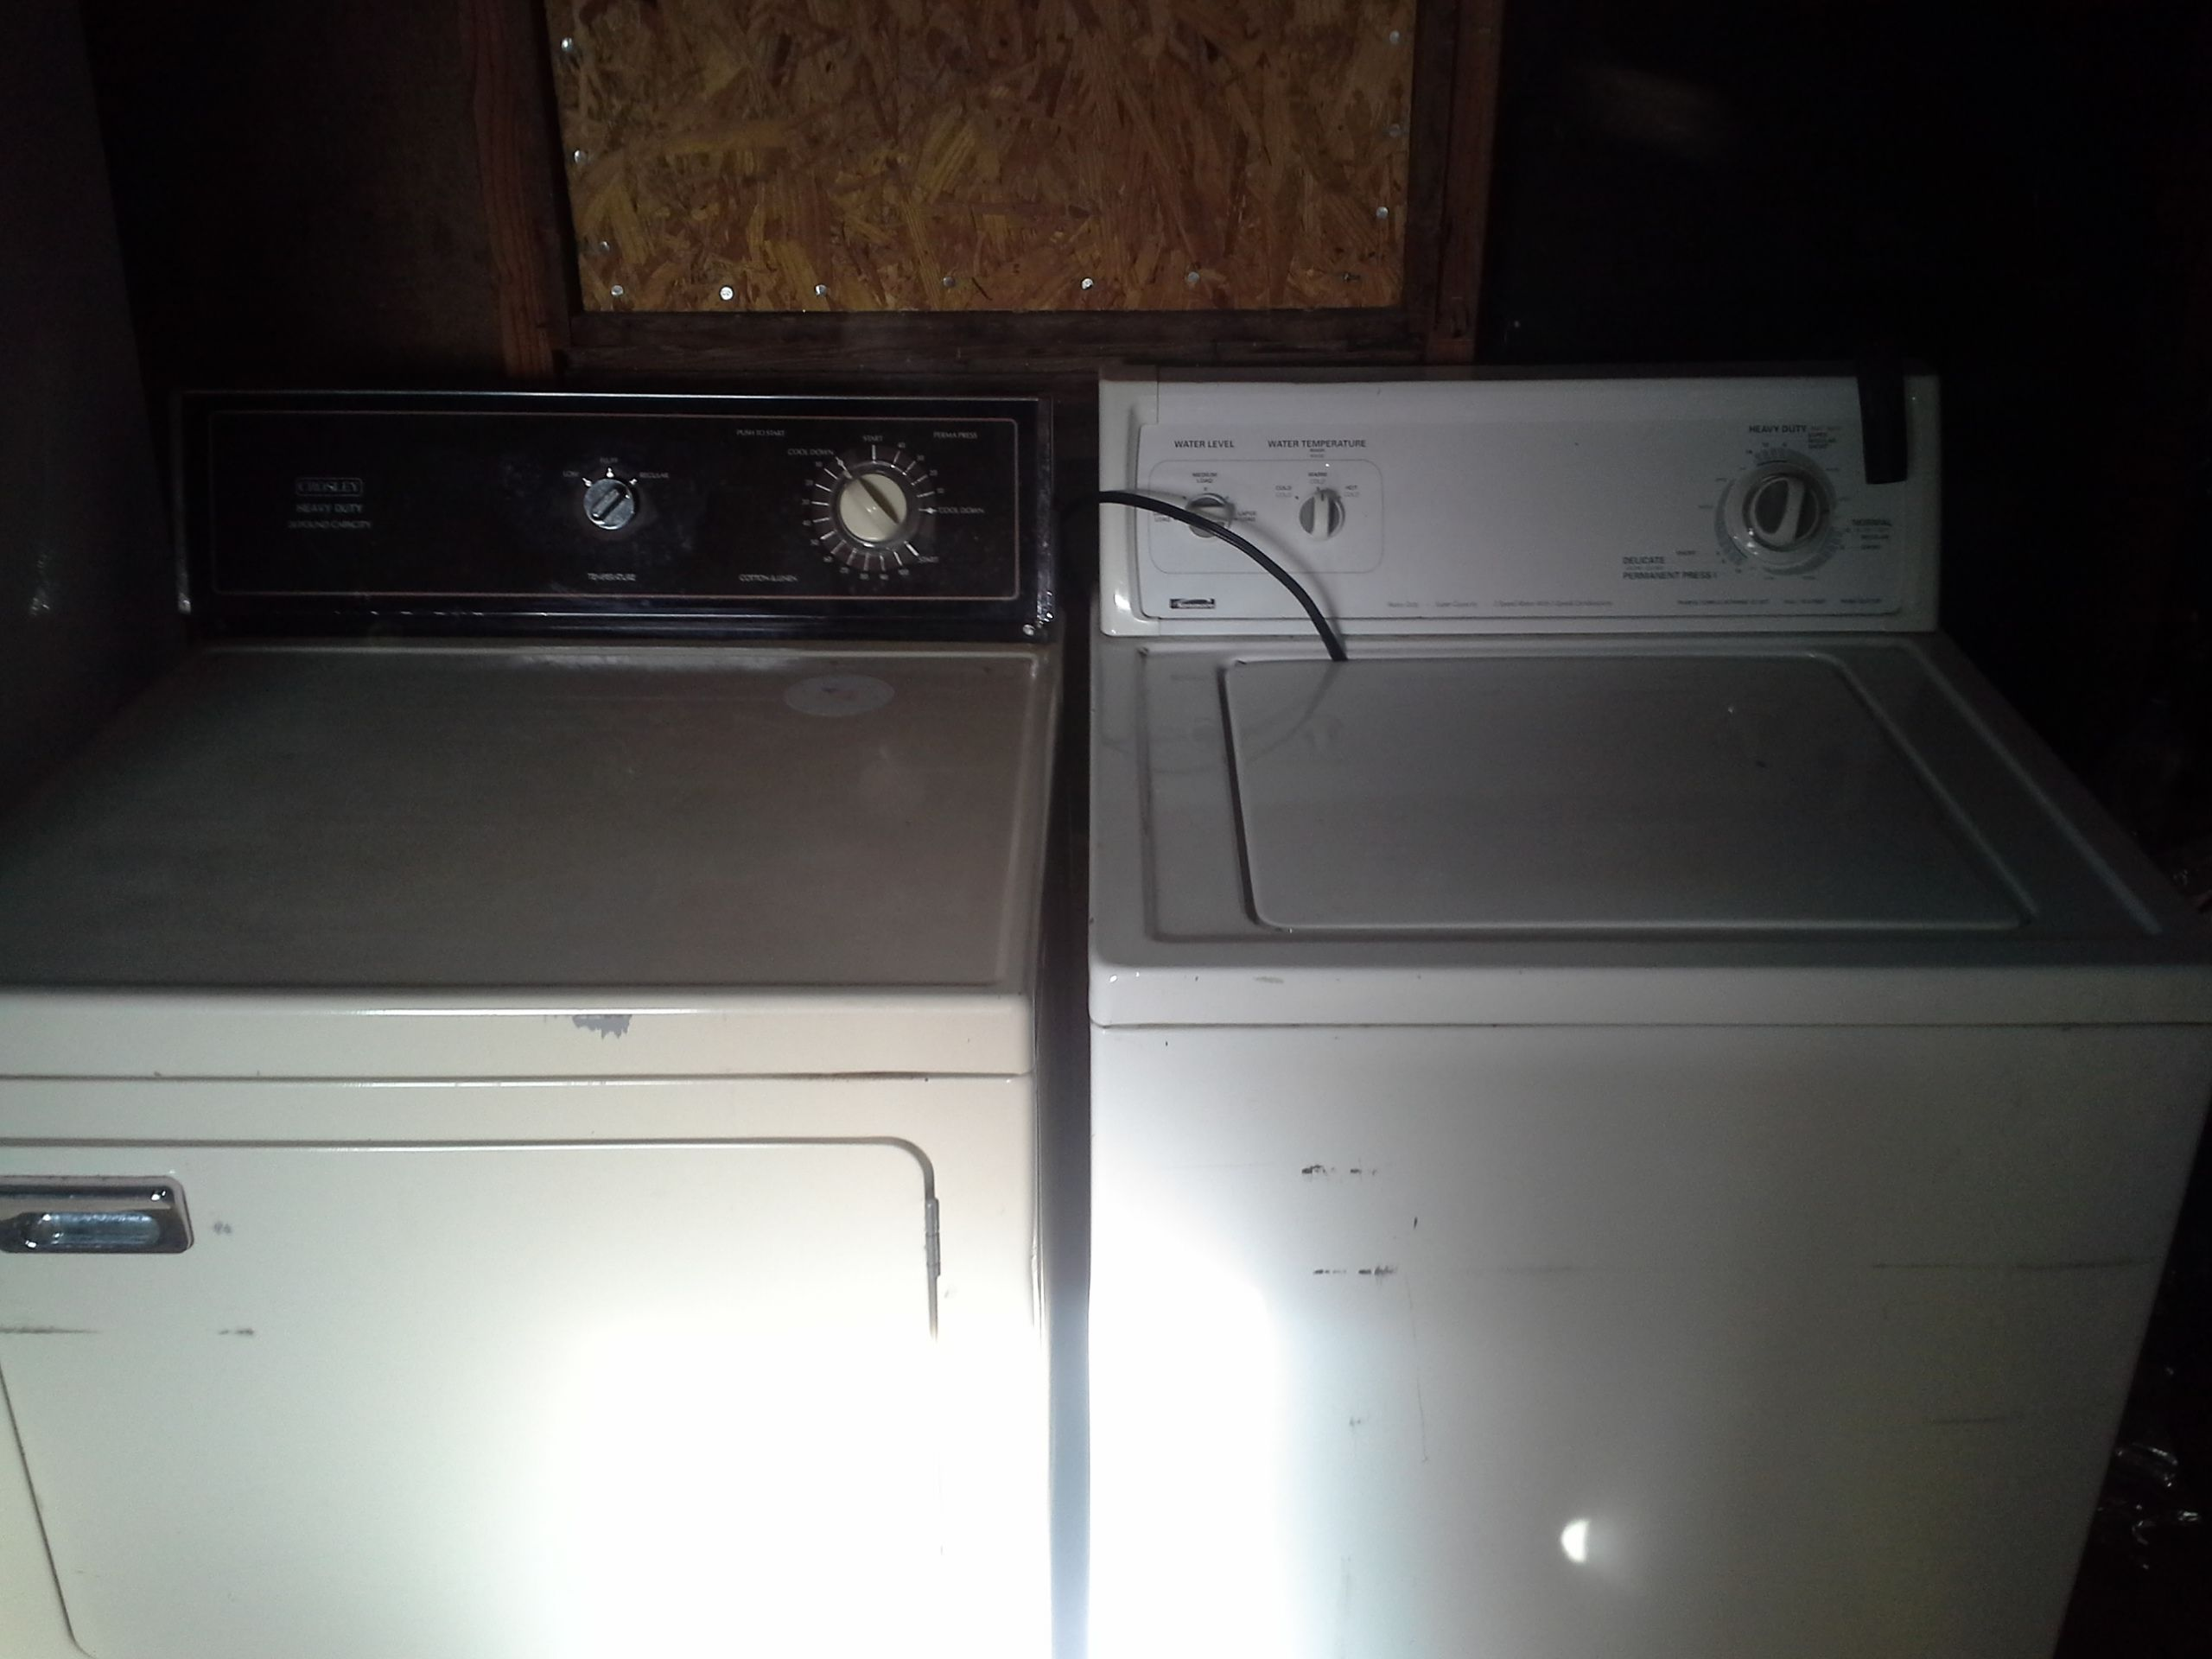 Washer And Dryer In Rebeccavp S Garage Sale Tahlequah Ok Washer